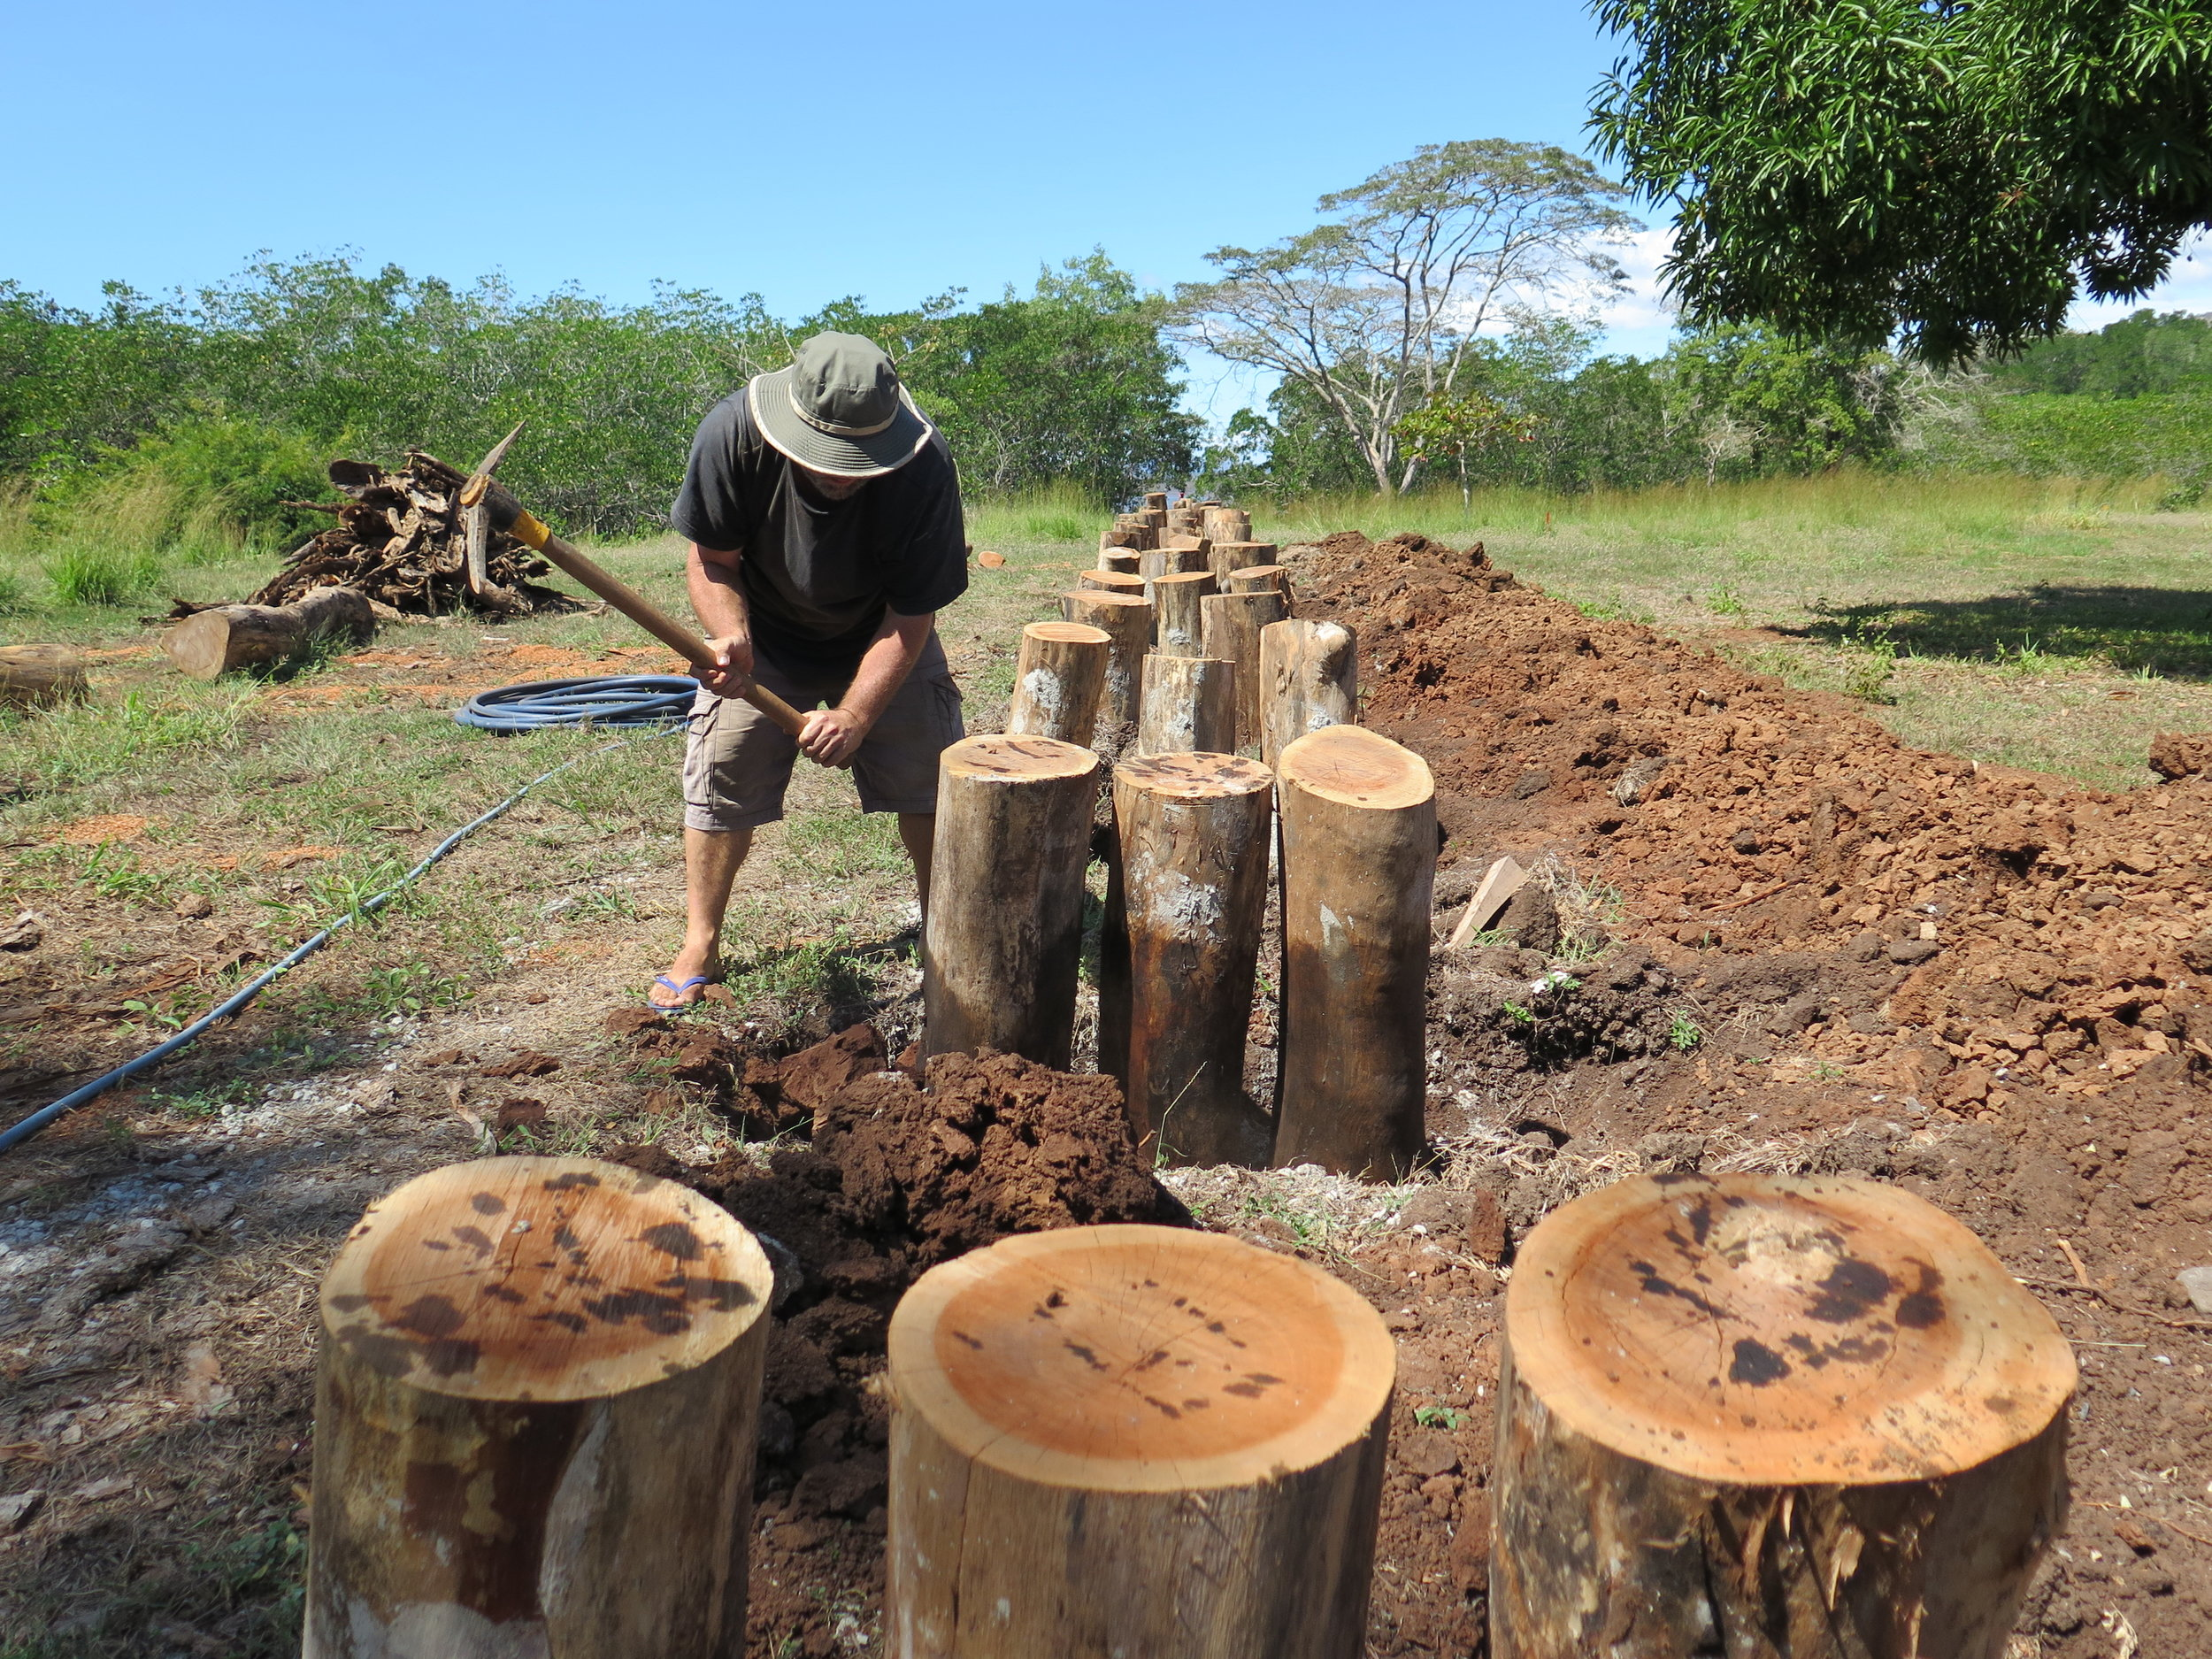 Location: Cocoroca, Punta Morales. Shipyard.  Richard works with the pick-ax to break apart the hard, dense clay around the foundation of where CEIBA's keel will be laid.